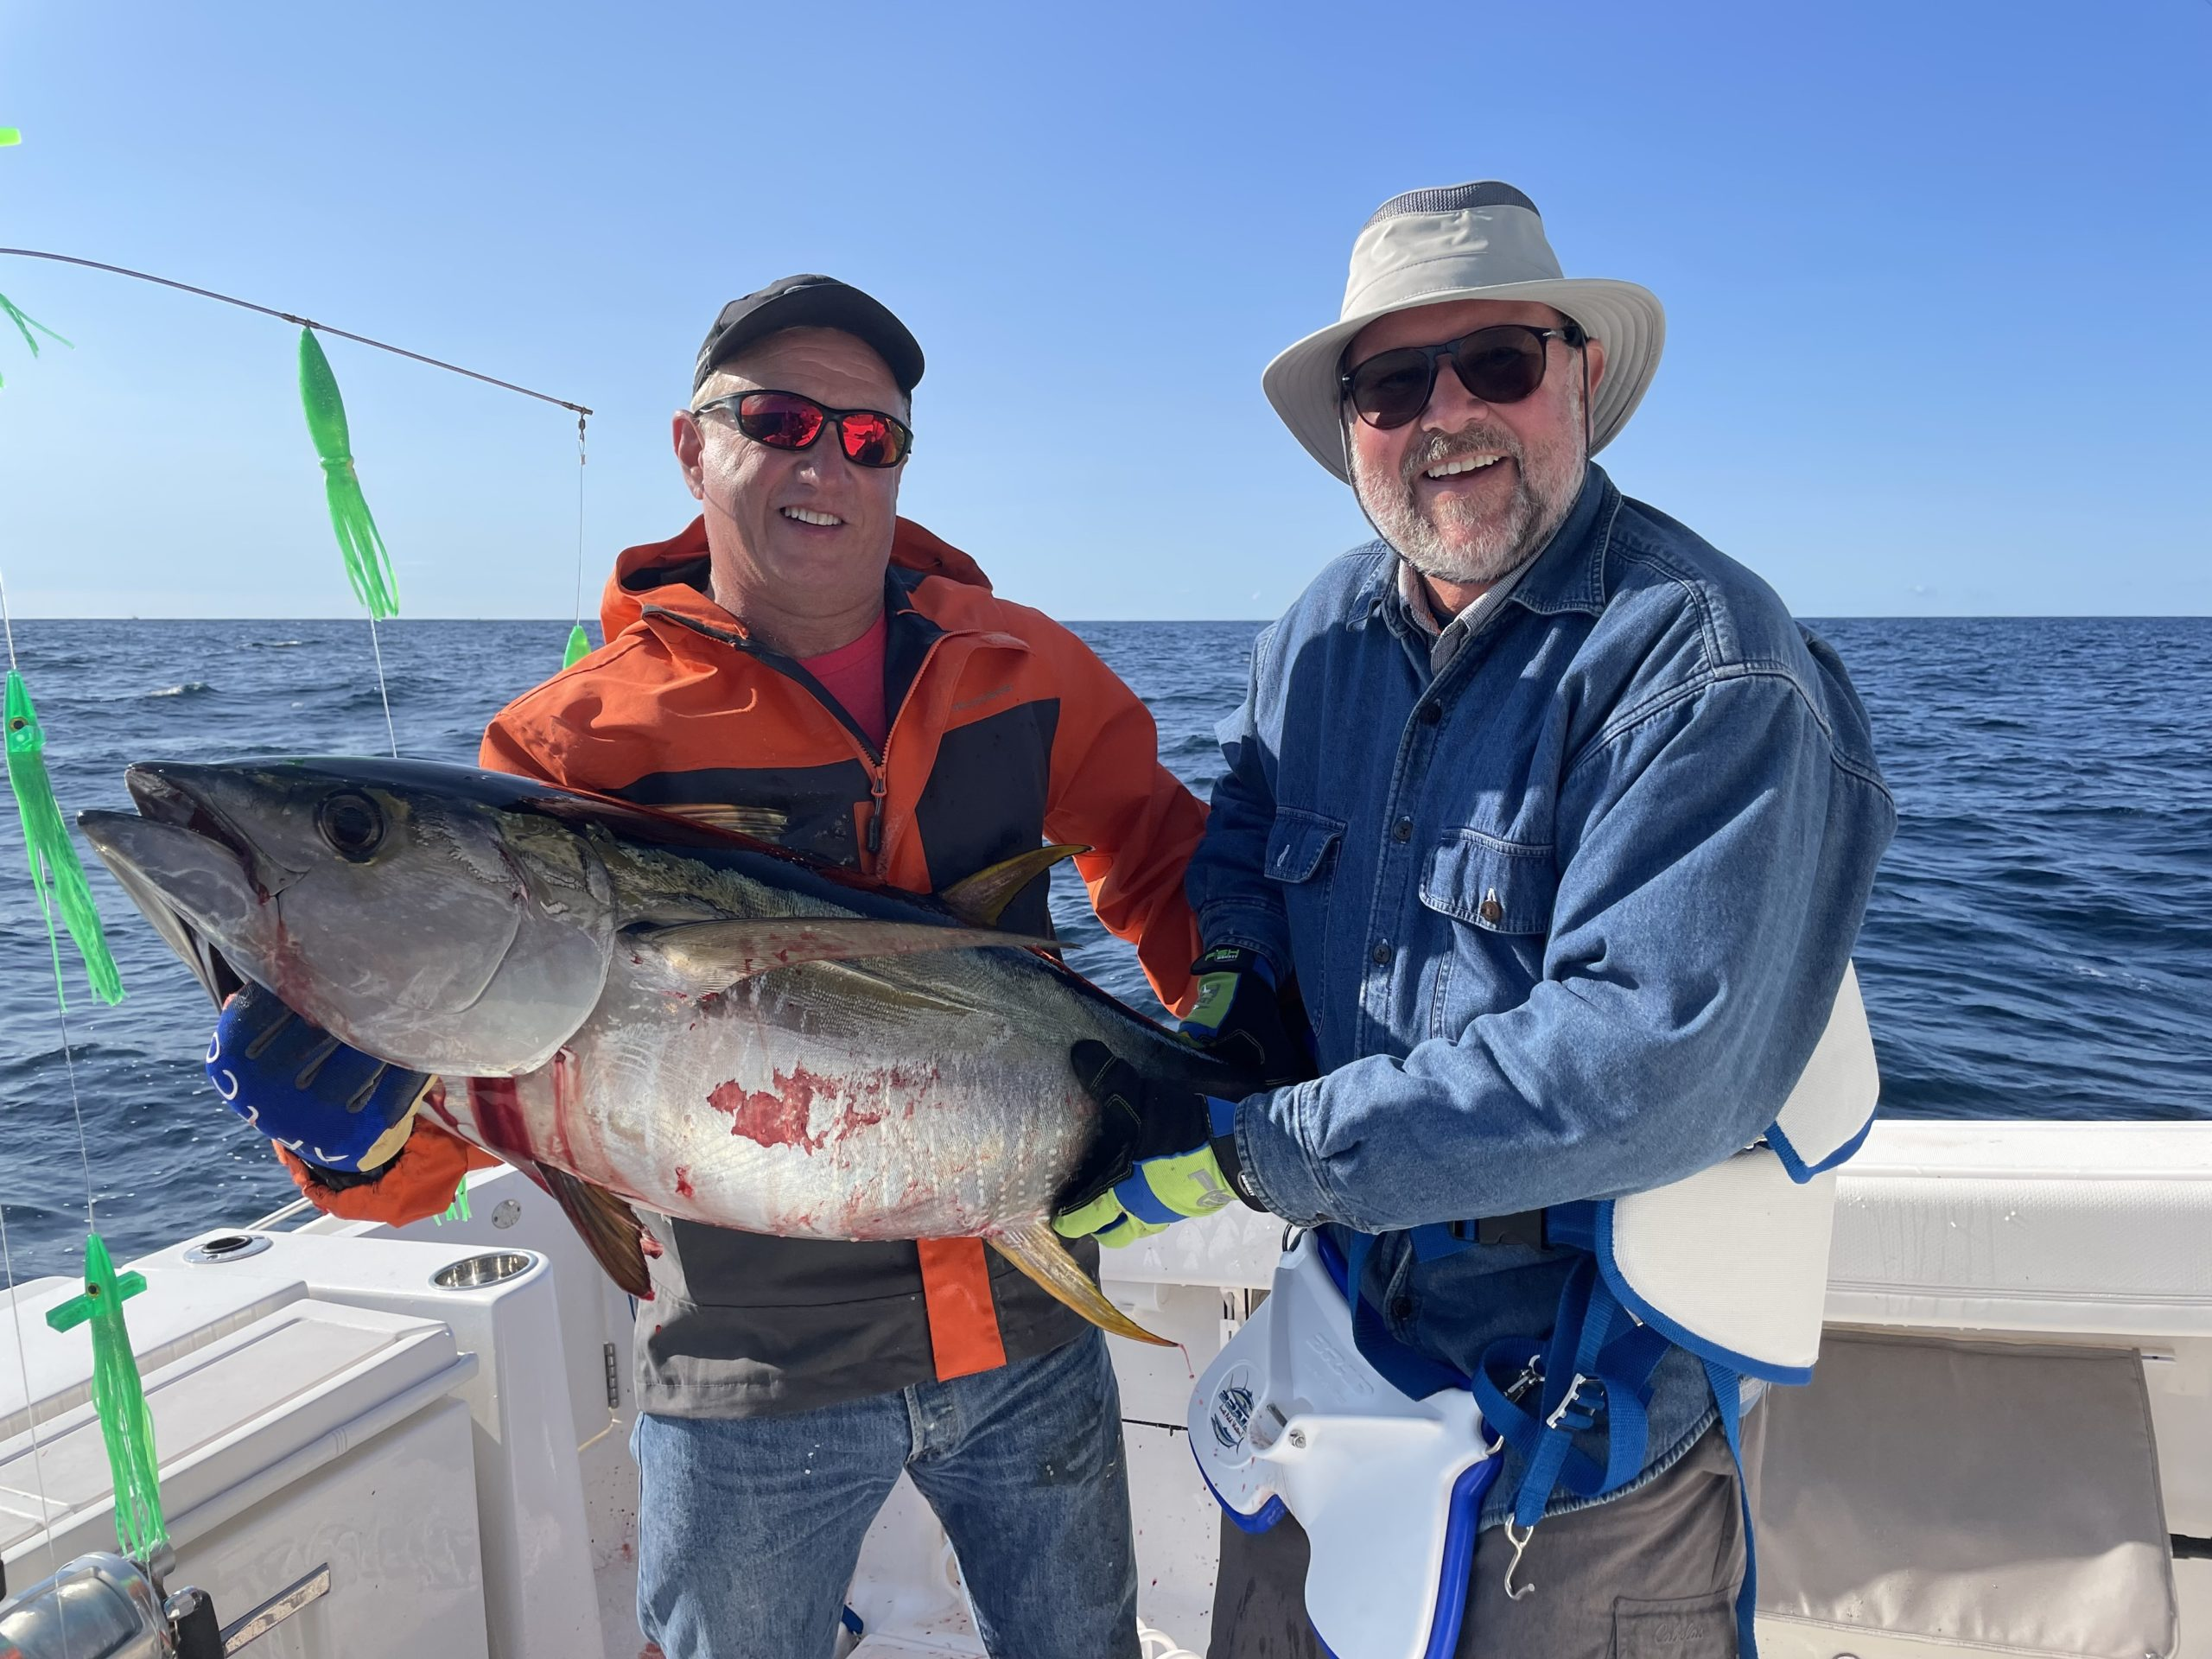 Drew Lanzetta and Ken Renkens with a nice inshore yellowfin caught out of Shinnecock Inlet.